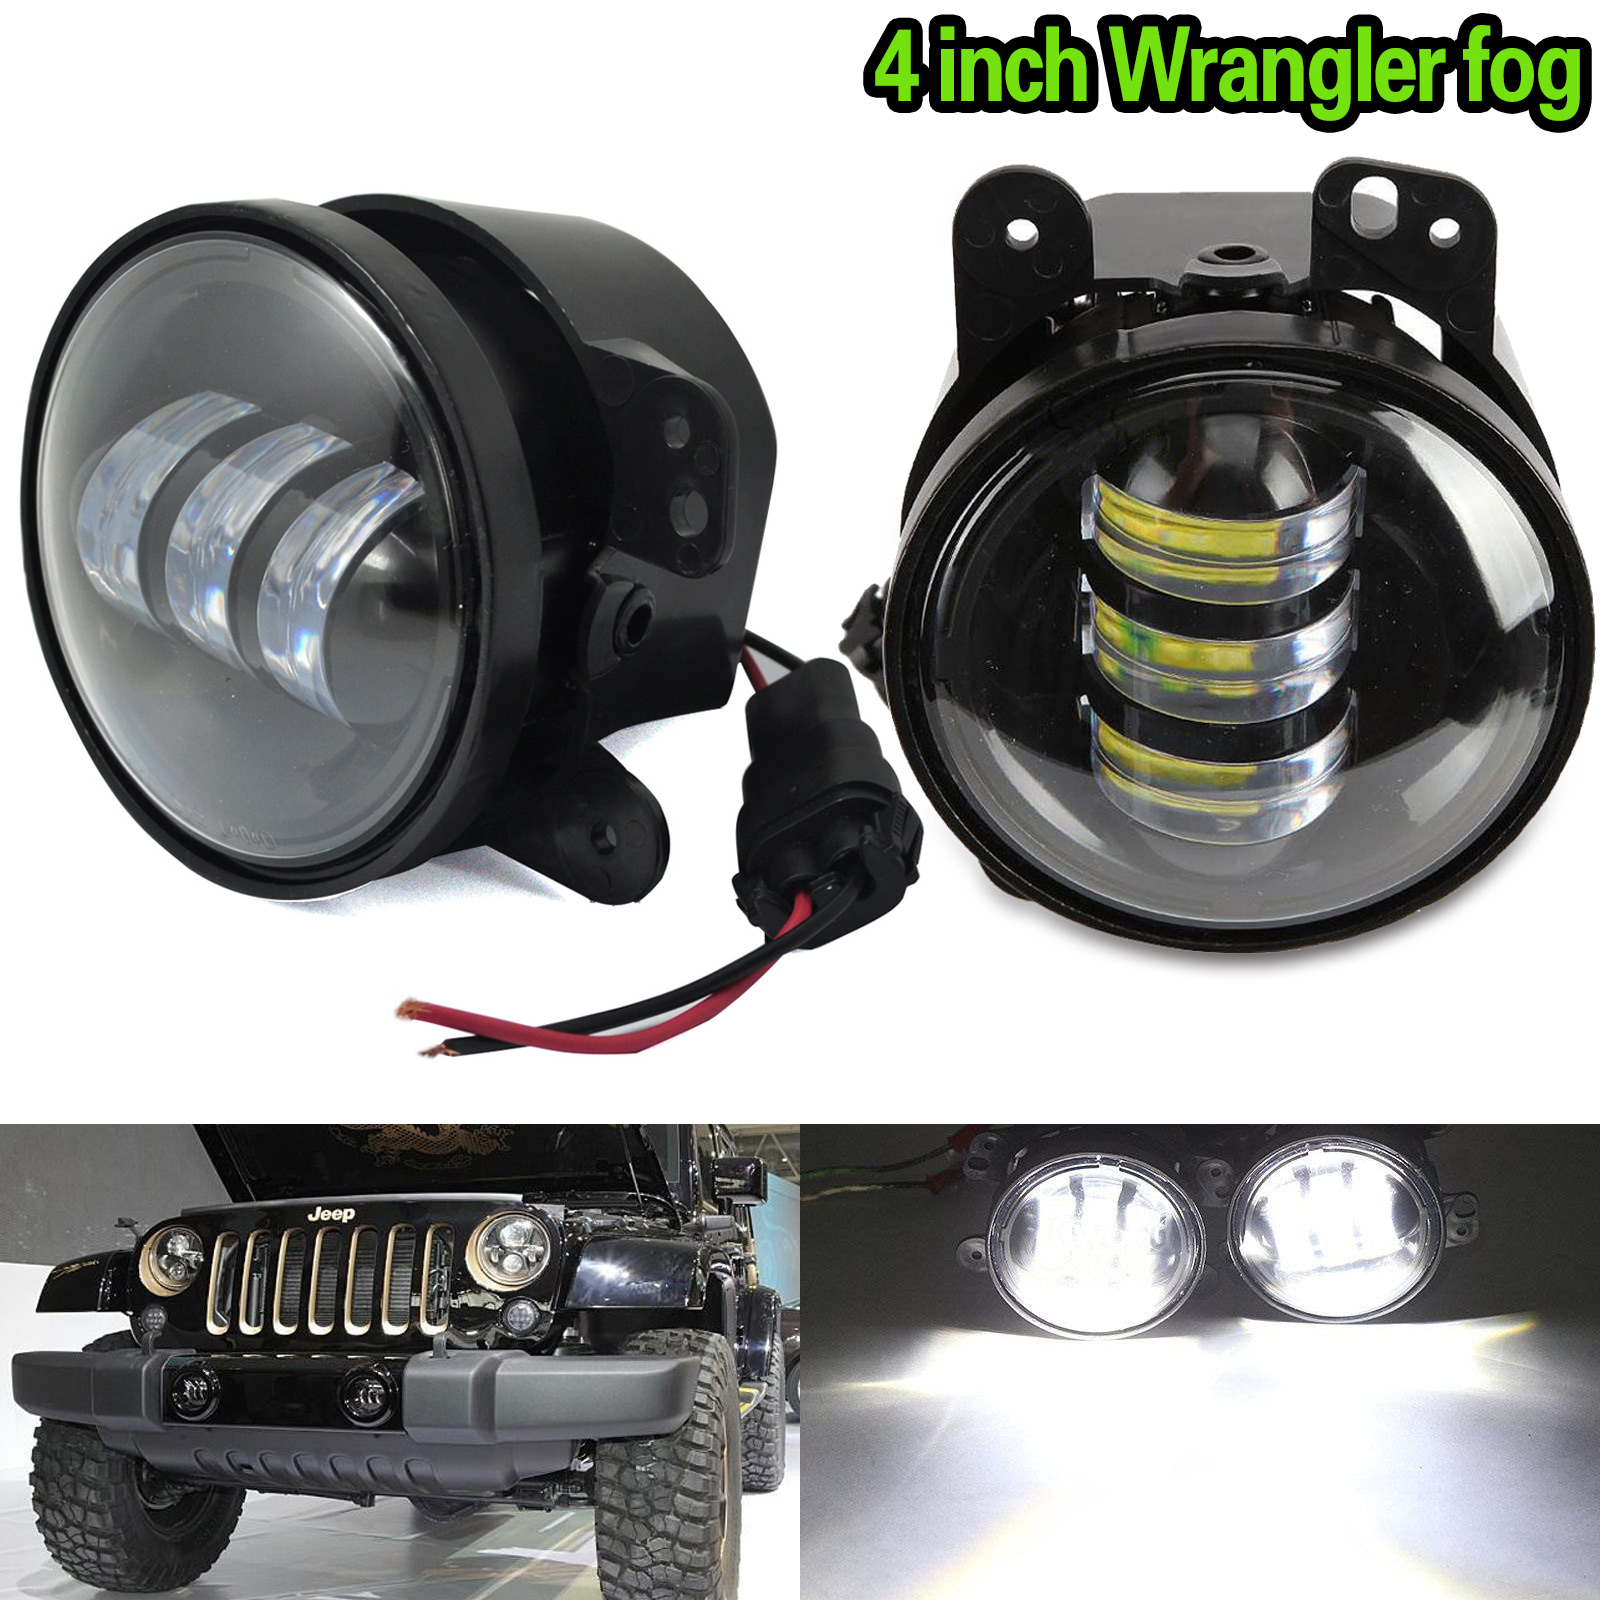 1 Pair 4inch 30W Car LED Fog Light Projector for Jeep Wrangler JK CJ Driving DRL Bulb DXY88 pair 4 inch led fog light projector driving light for 10th anniversary front bumper of jeep wrangler jk 07 front bumper lights